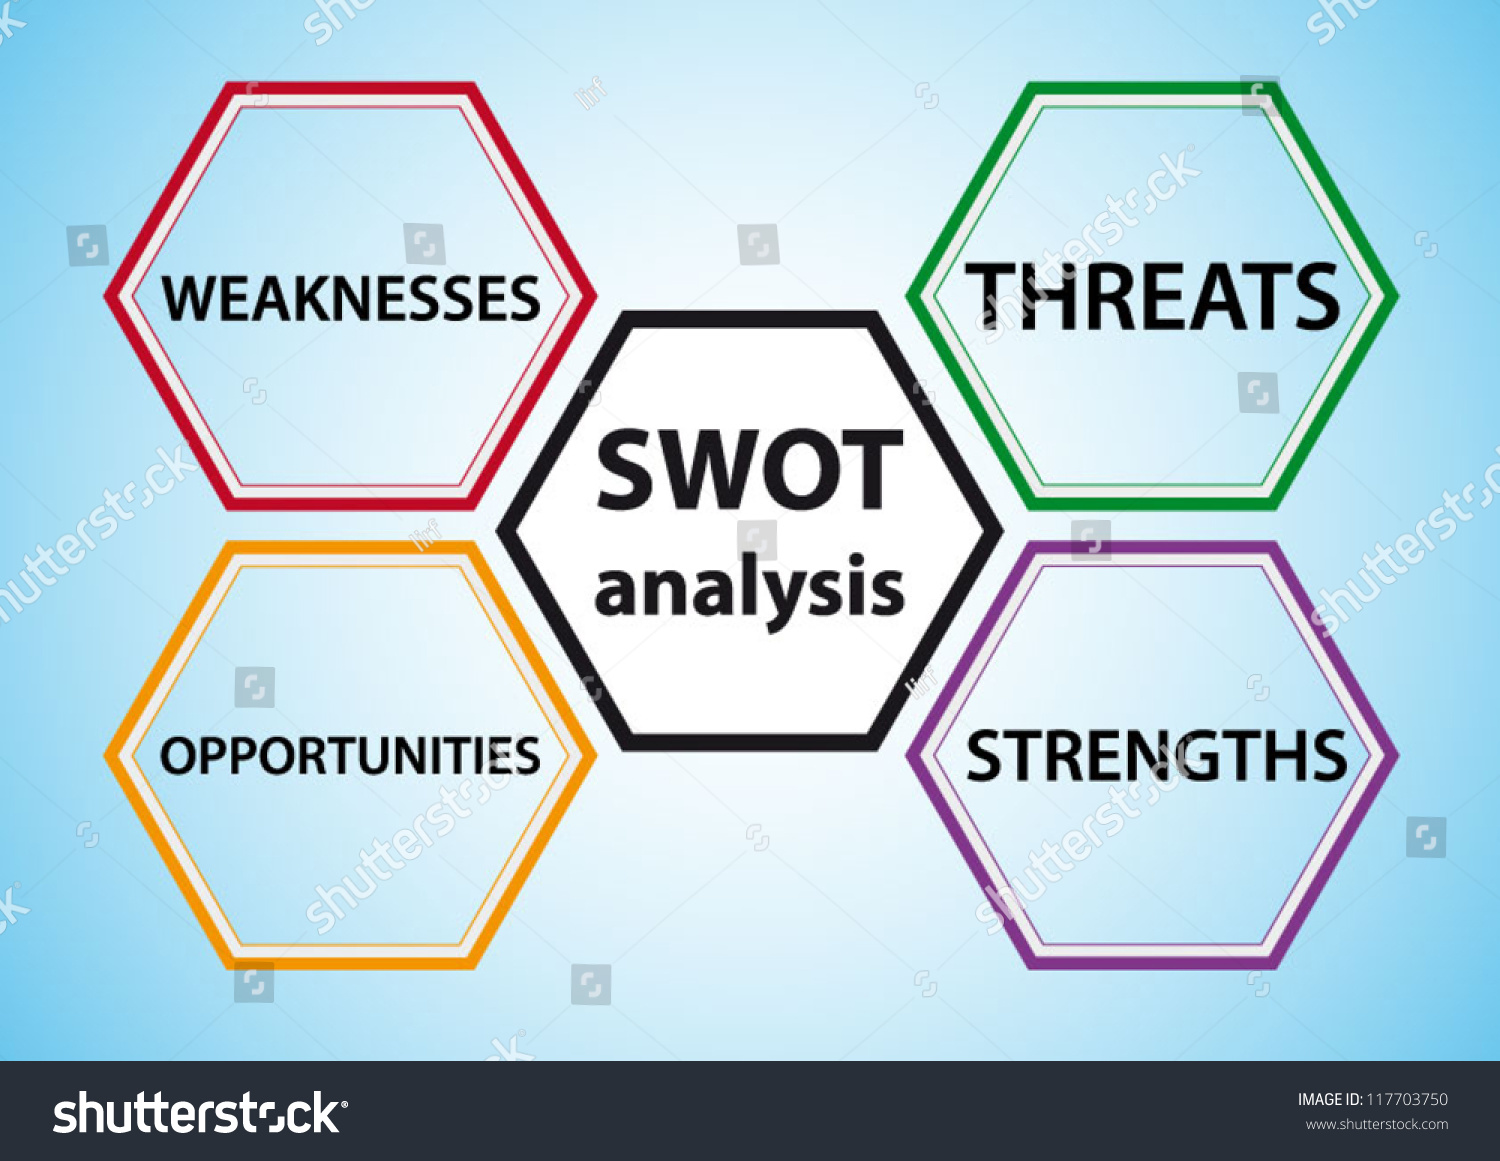 swot analysis strength weakness opportunities threats stock vector swot analysis strength weakness opportunities and threats words concept